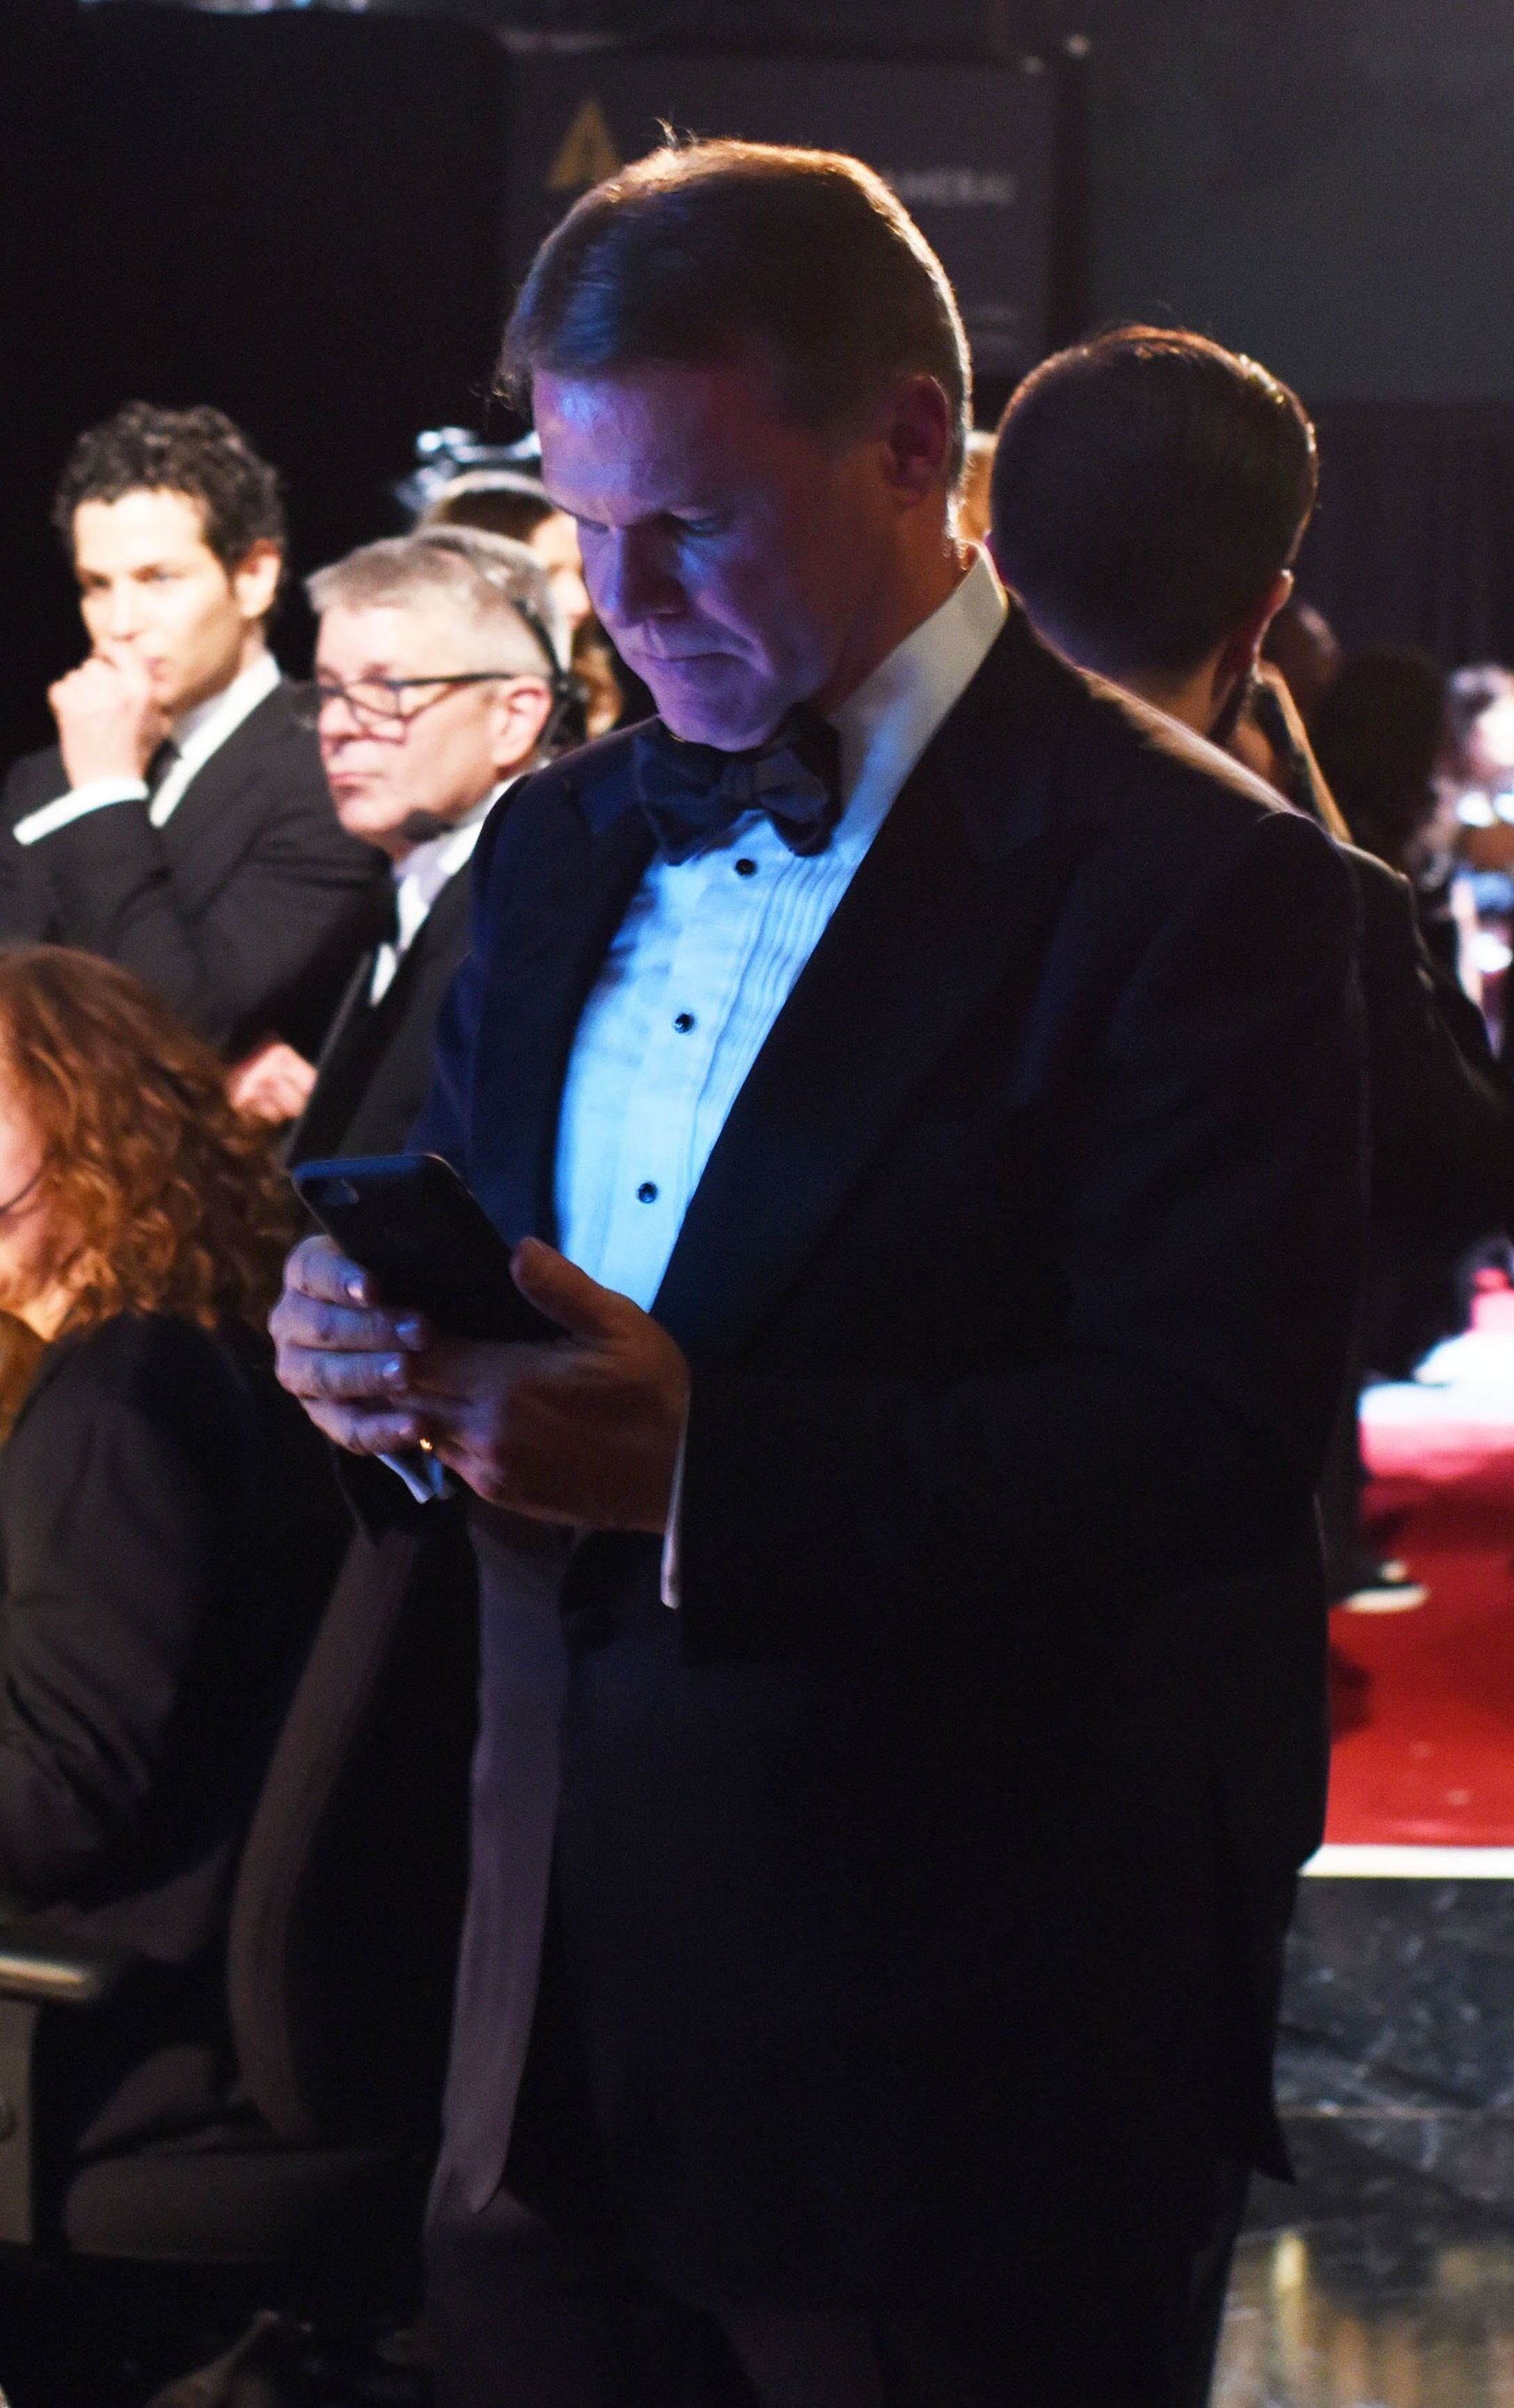 PwC partner Brian Cullinan using his phone during the ceremony in February.